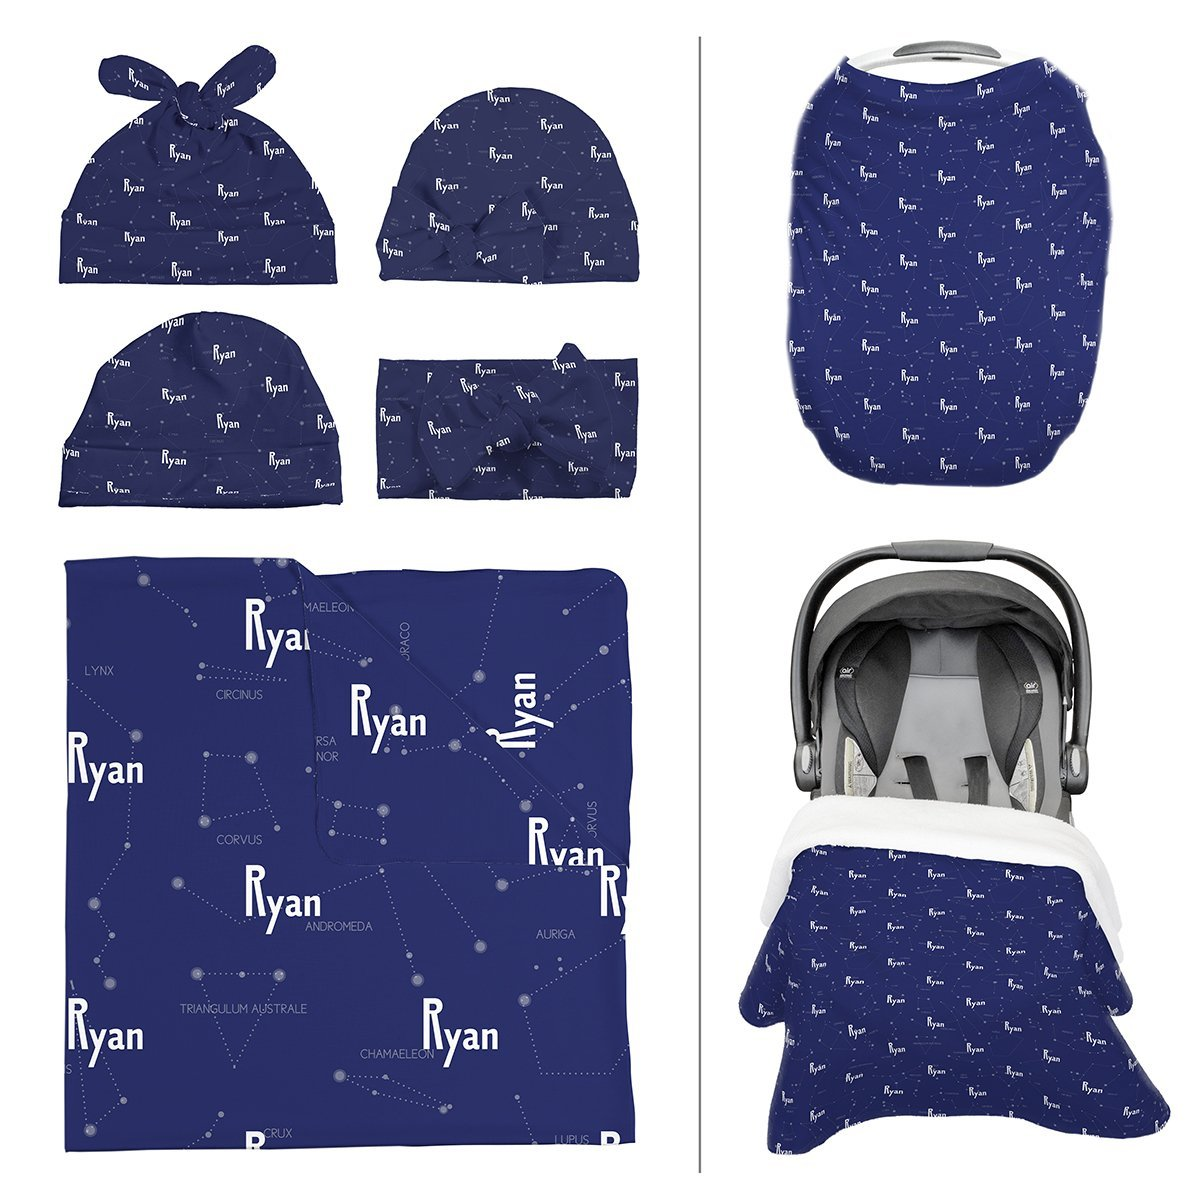 Ryan's Captivating Constellation | Take Me Home Bundle